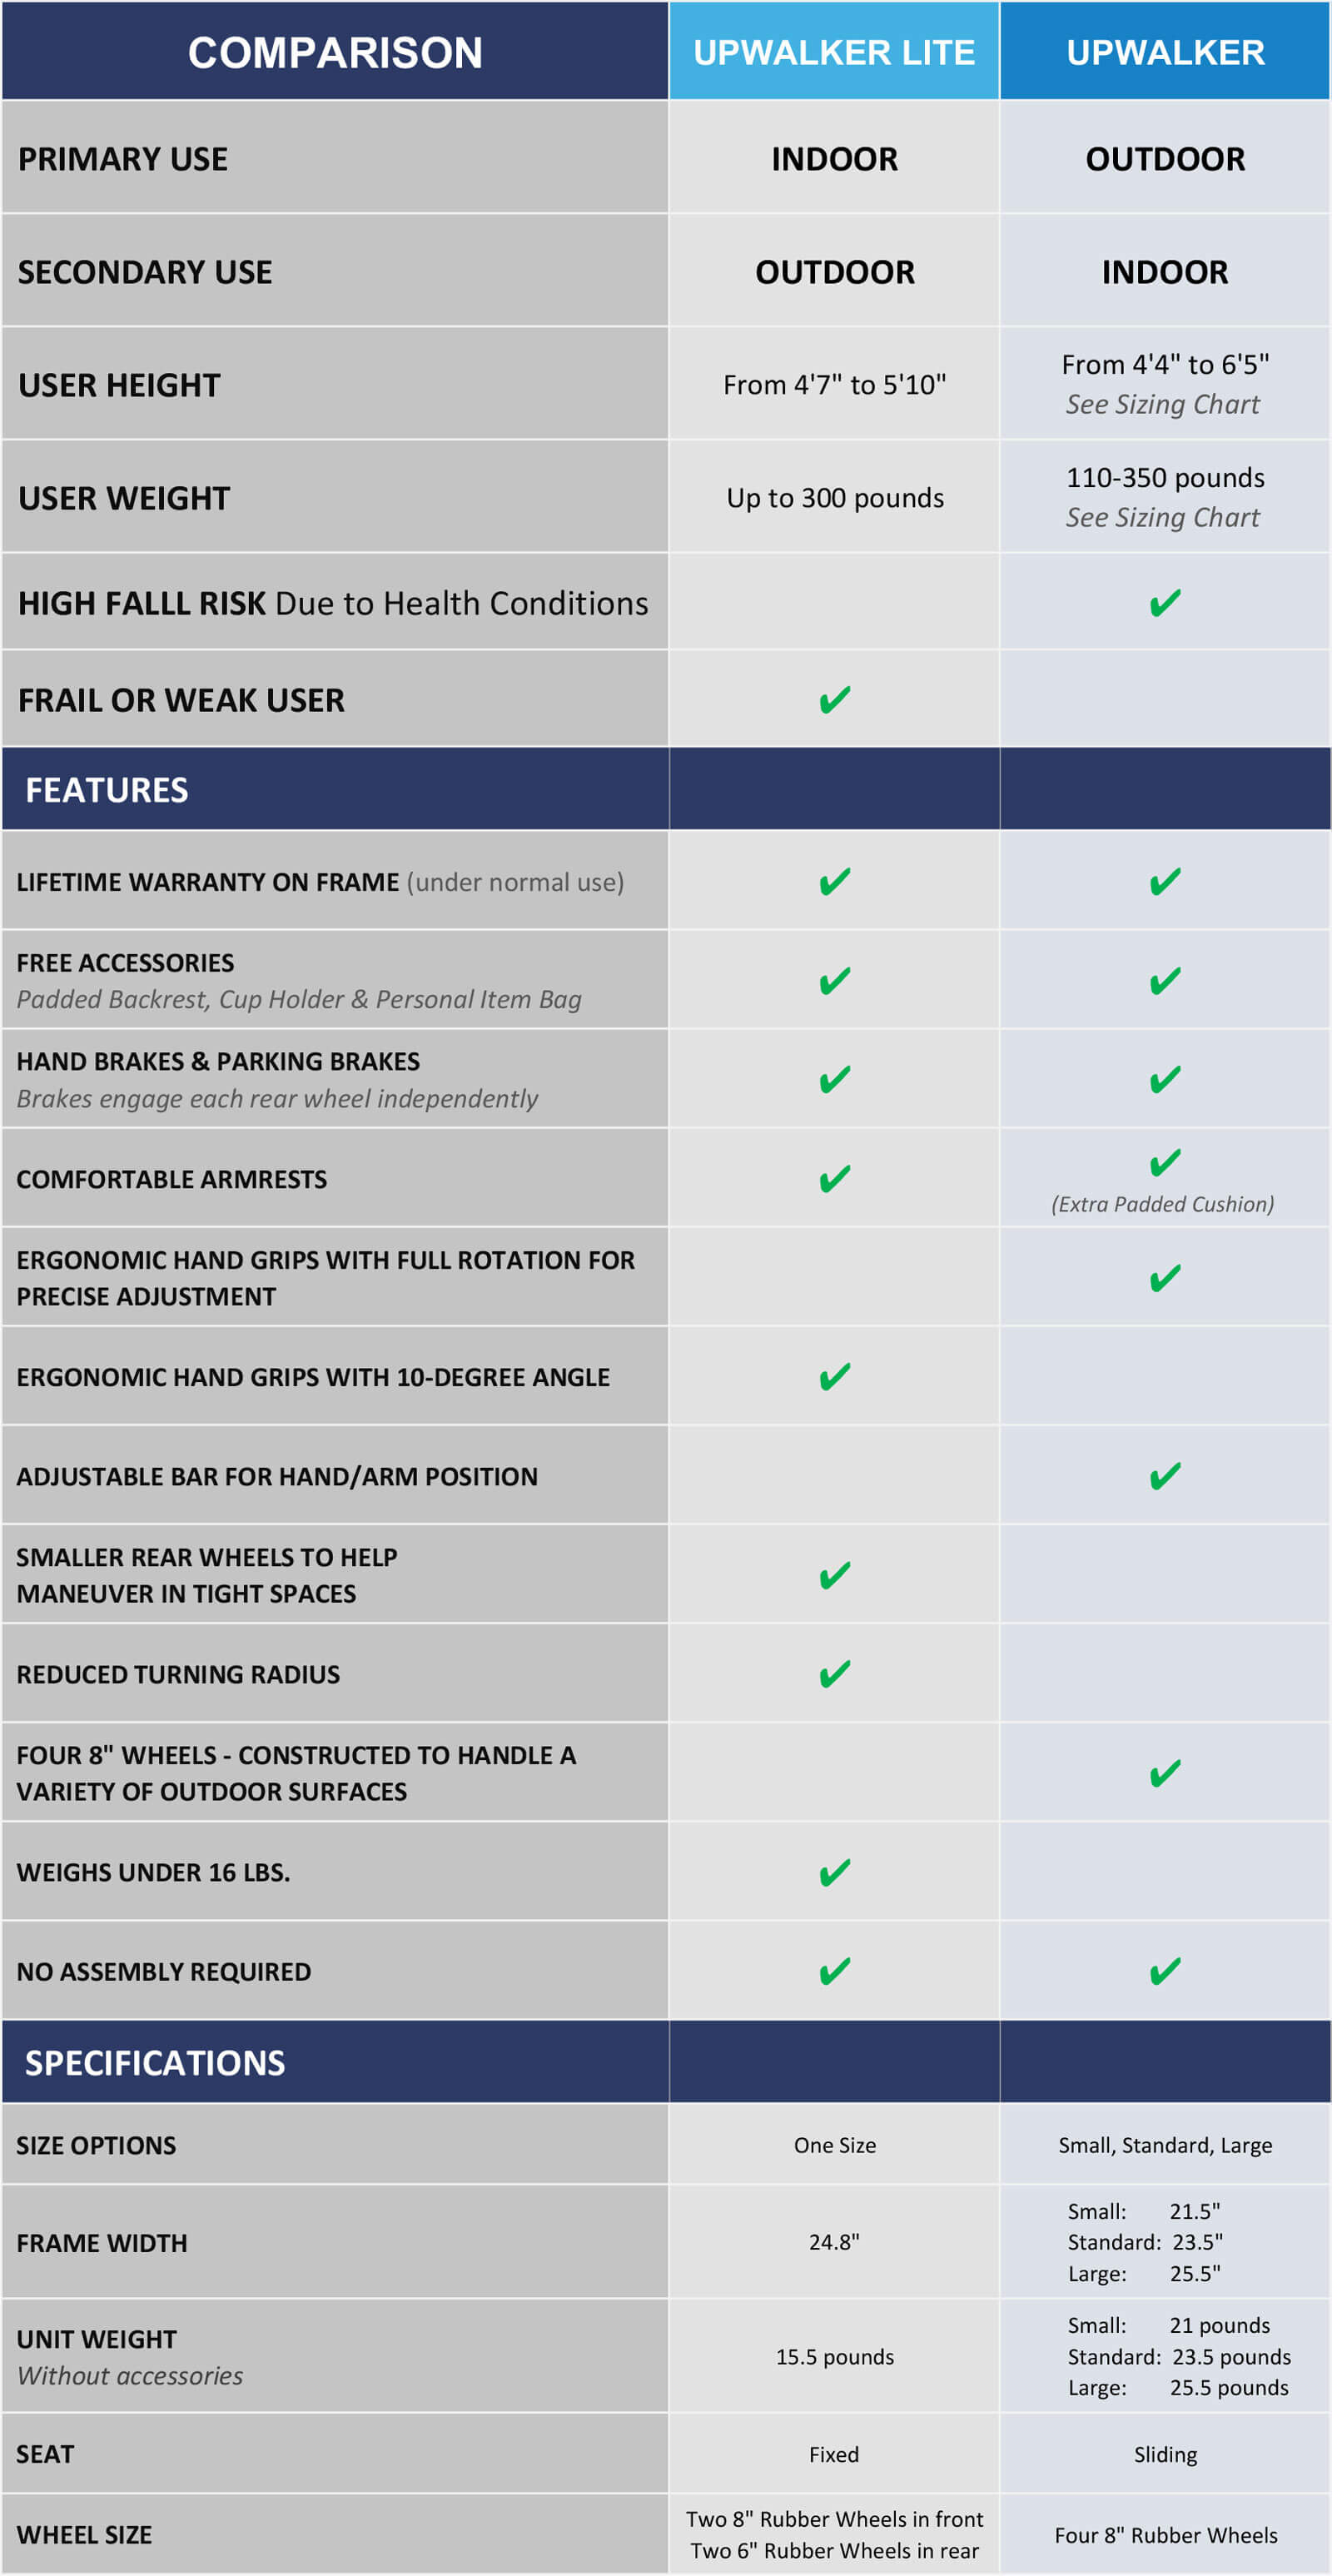 A comparison chart for the UPWalker and UPWalker Lite, including intended uses for each walker, primary features, and more.